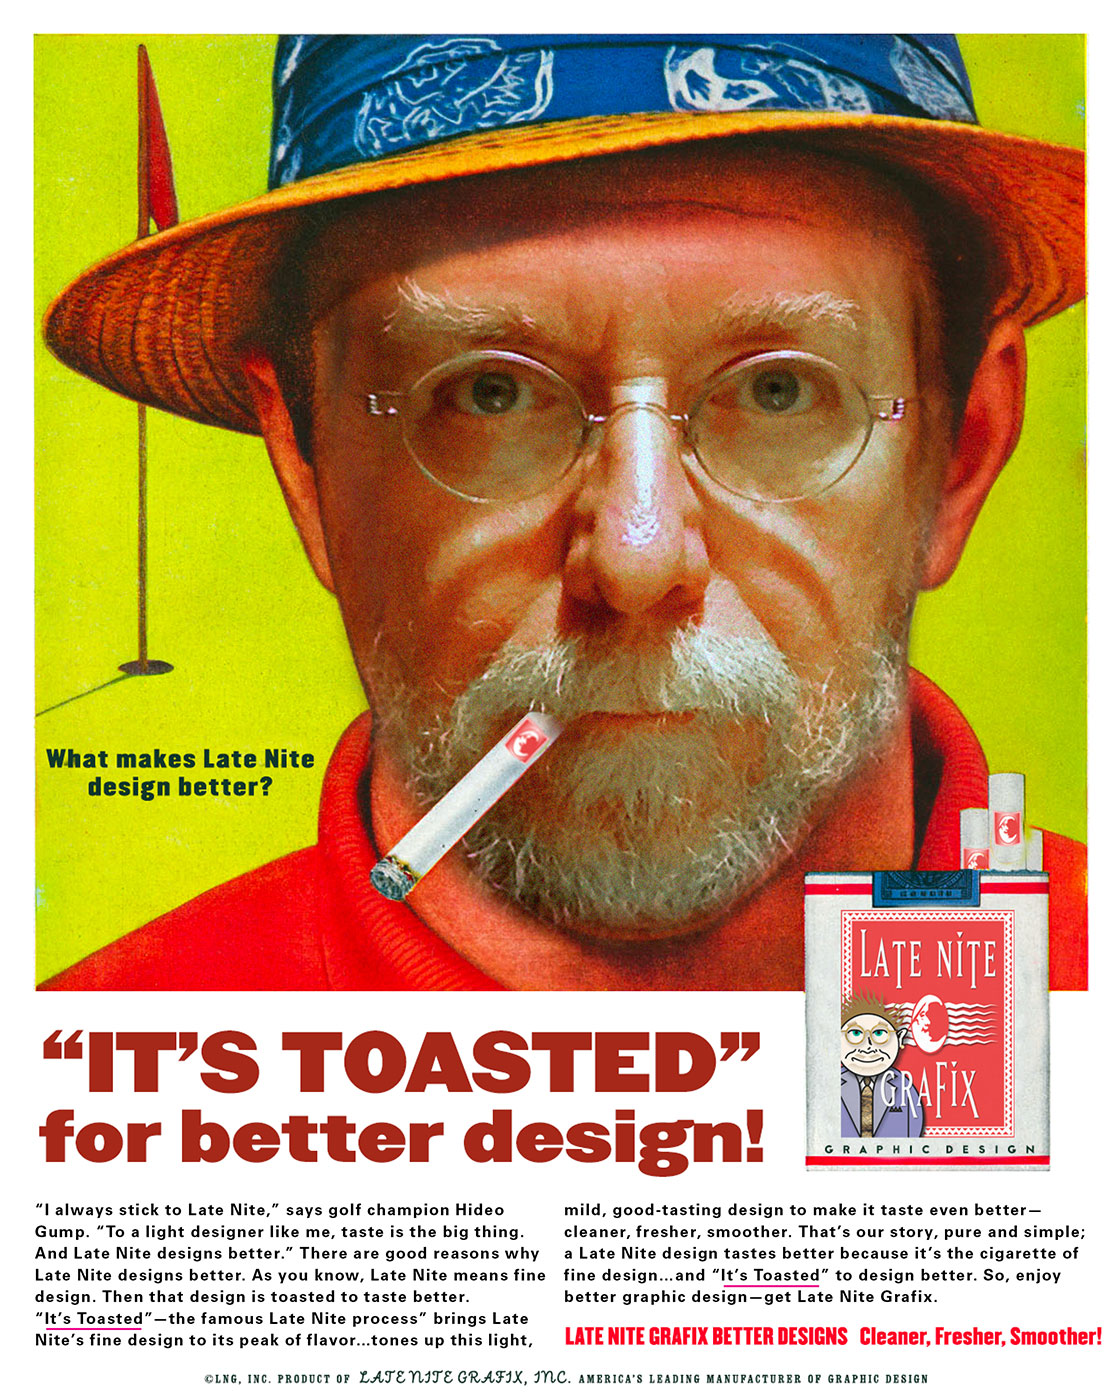 It's Toasted for Better Design!